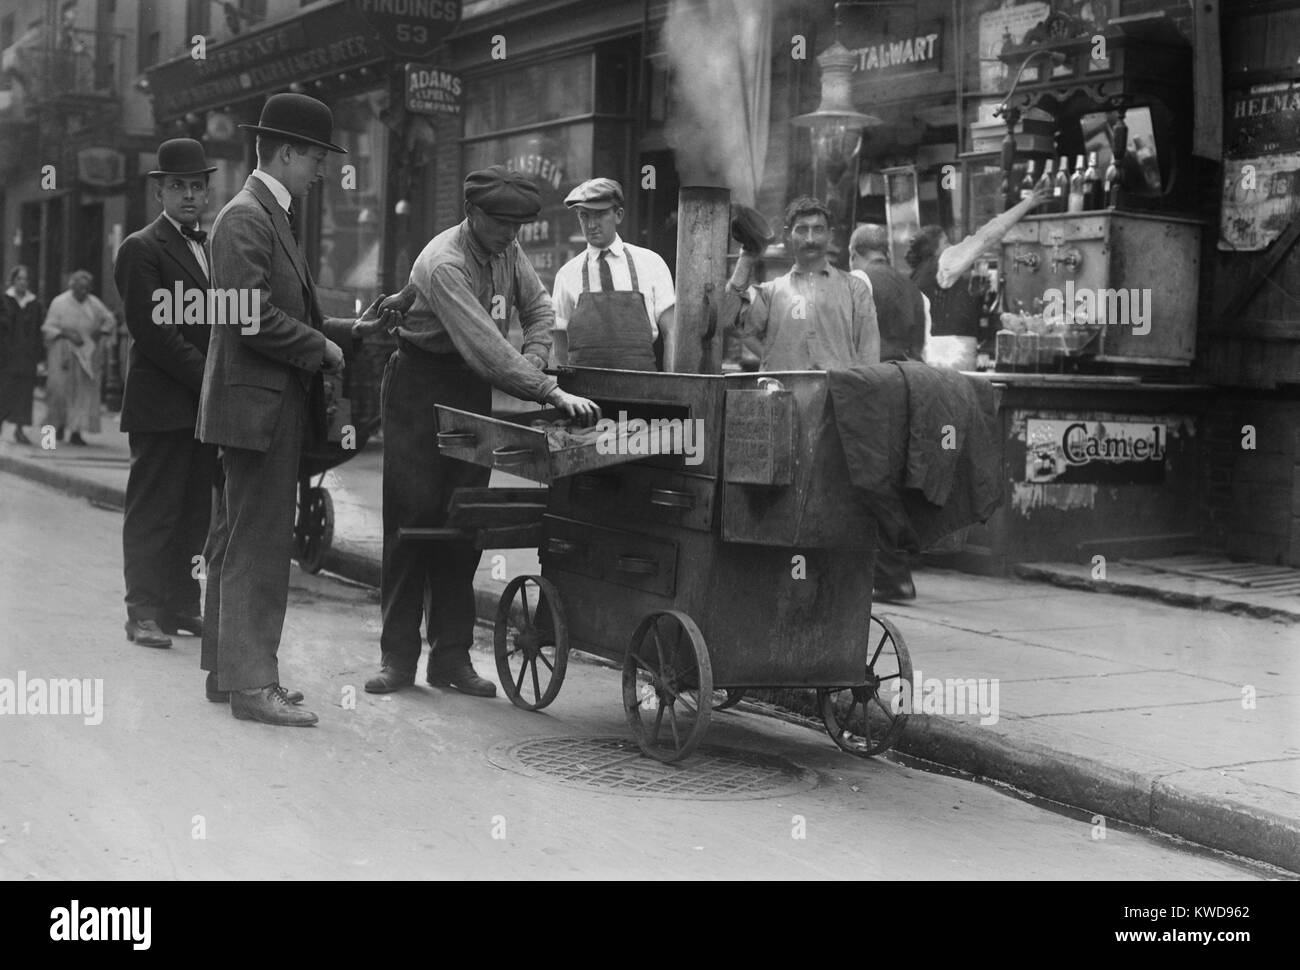 Baked potato vendor with a pushcart oven in New York's Lower East Side, c. 1915-20. The neighborhood was packed - Stock Image